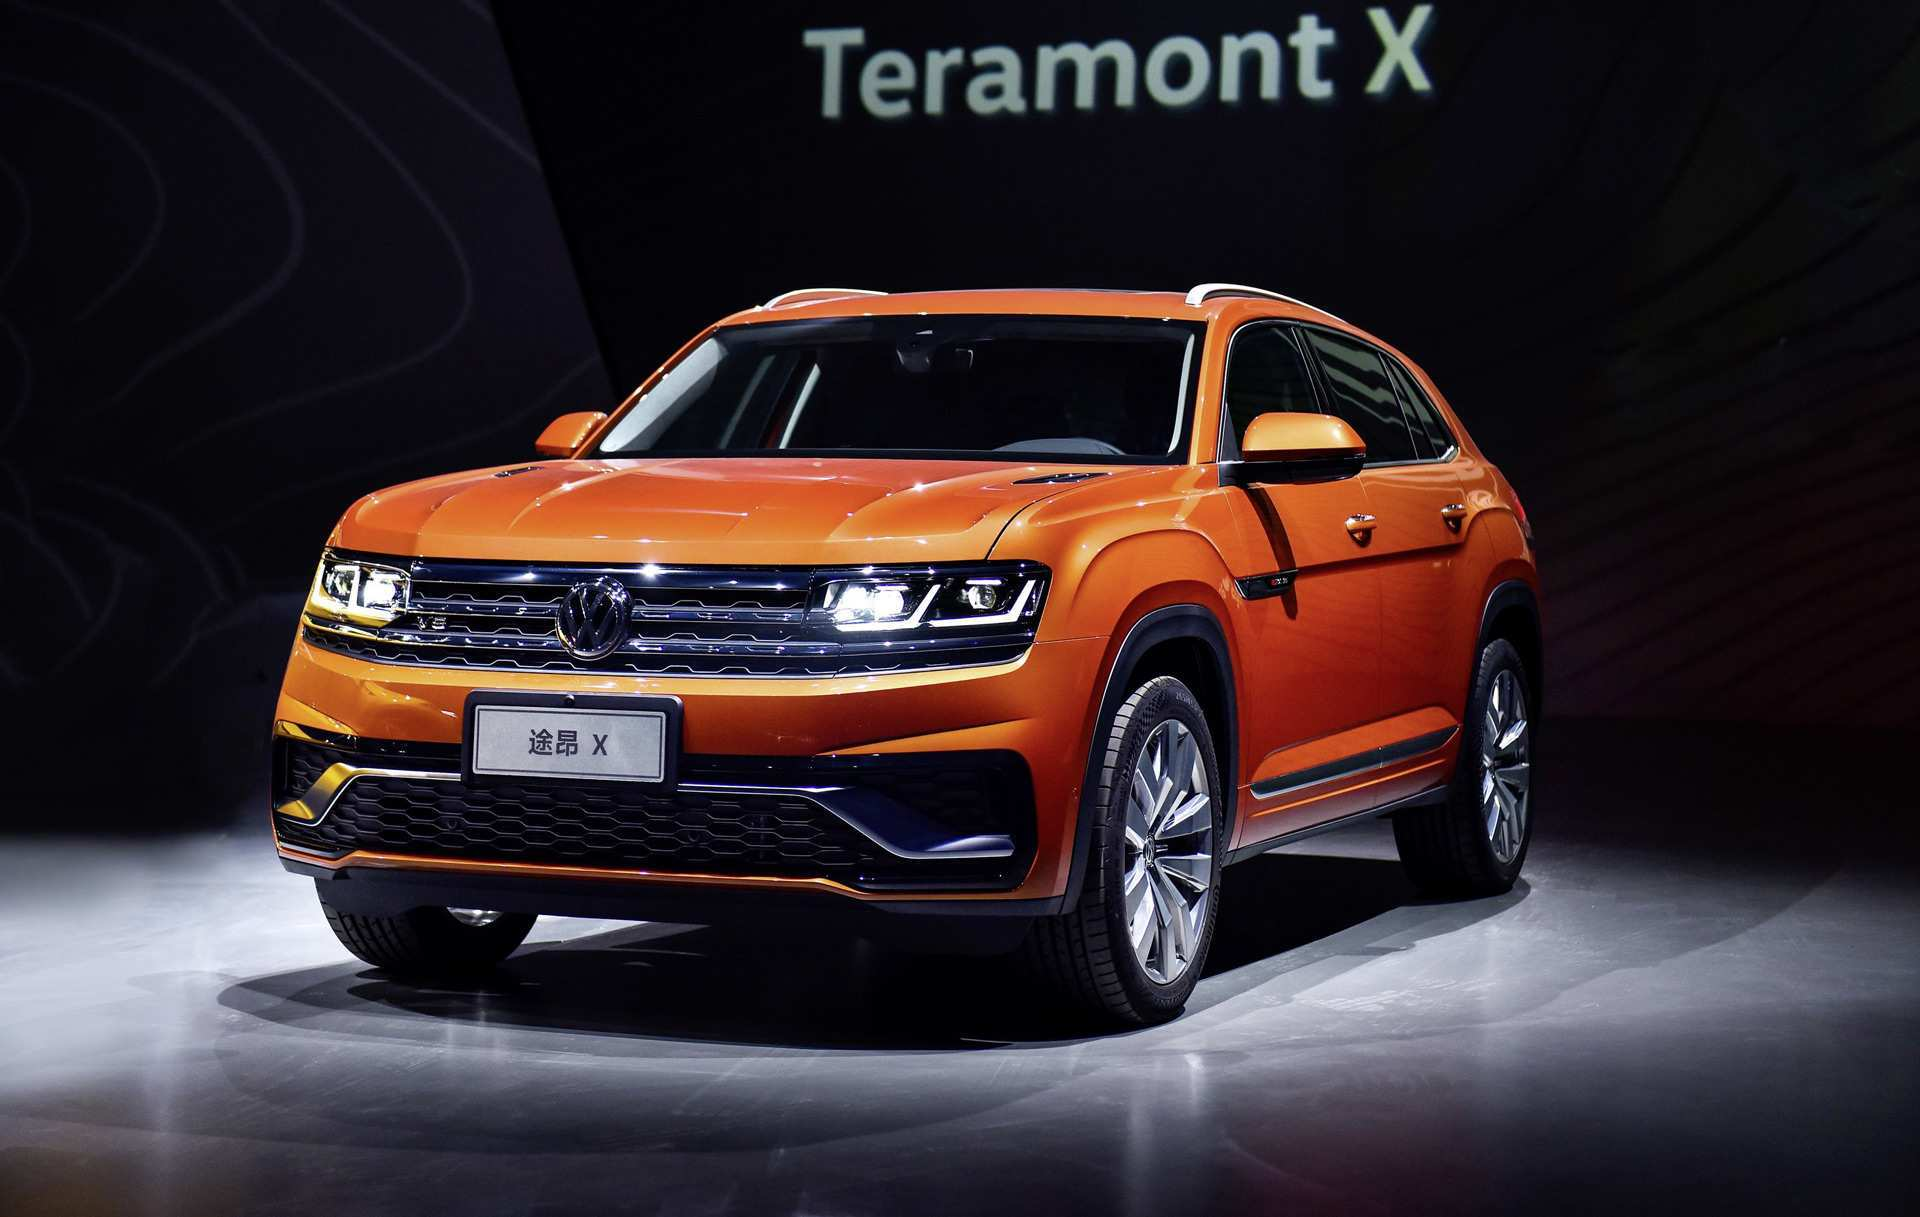 71 All New Volkswagen Suv 2020 Redesign